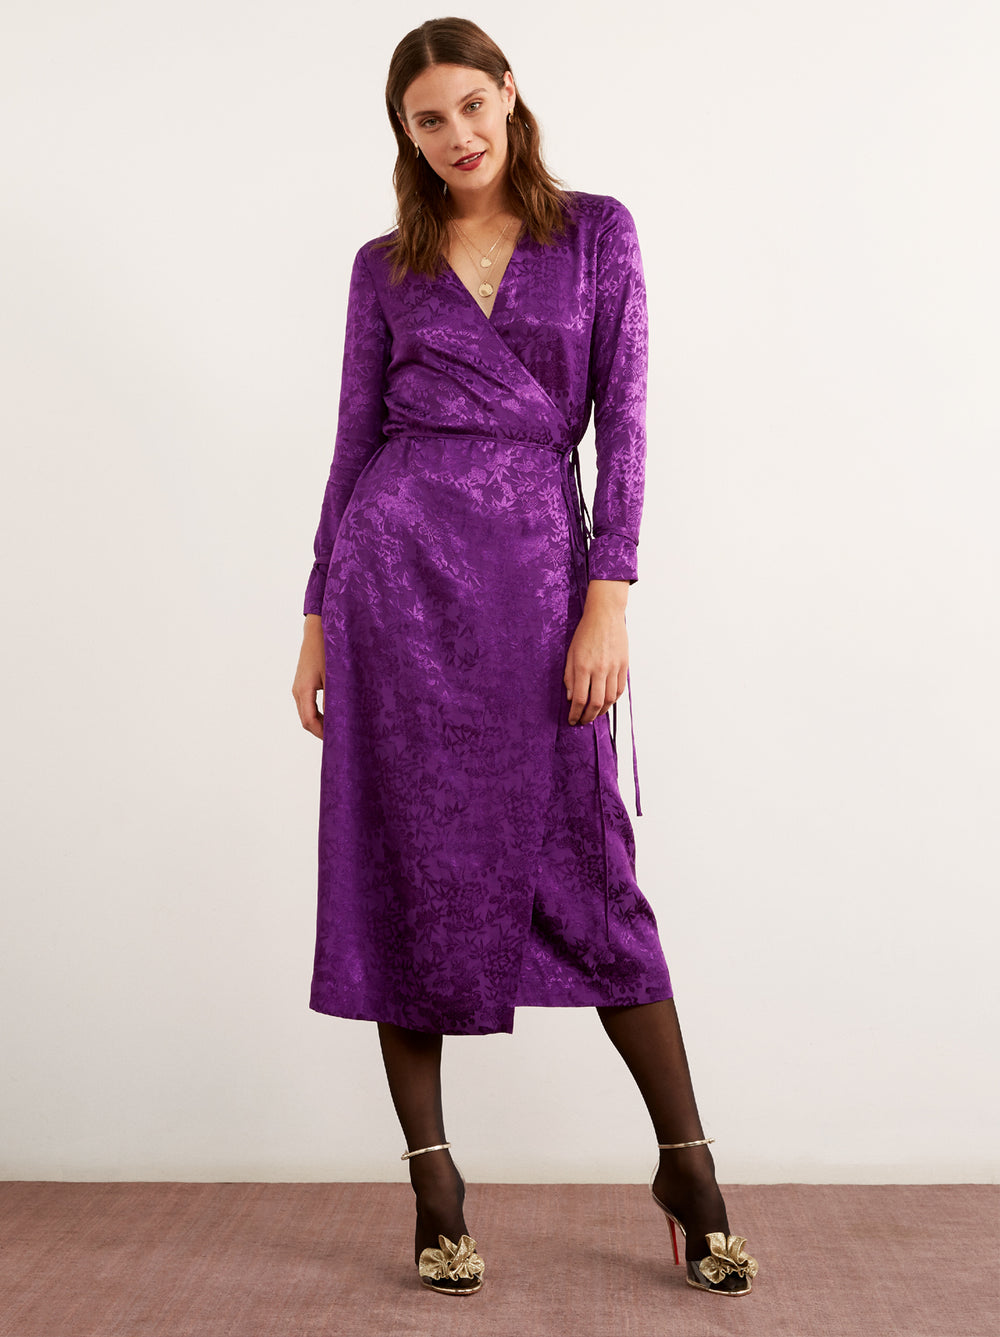 eca3991d877 Odile Purple Floral Print Wrap Dress by KITRI Studio ...